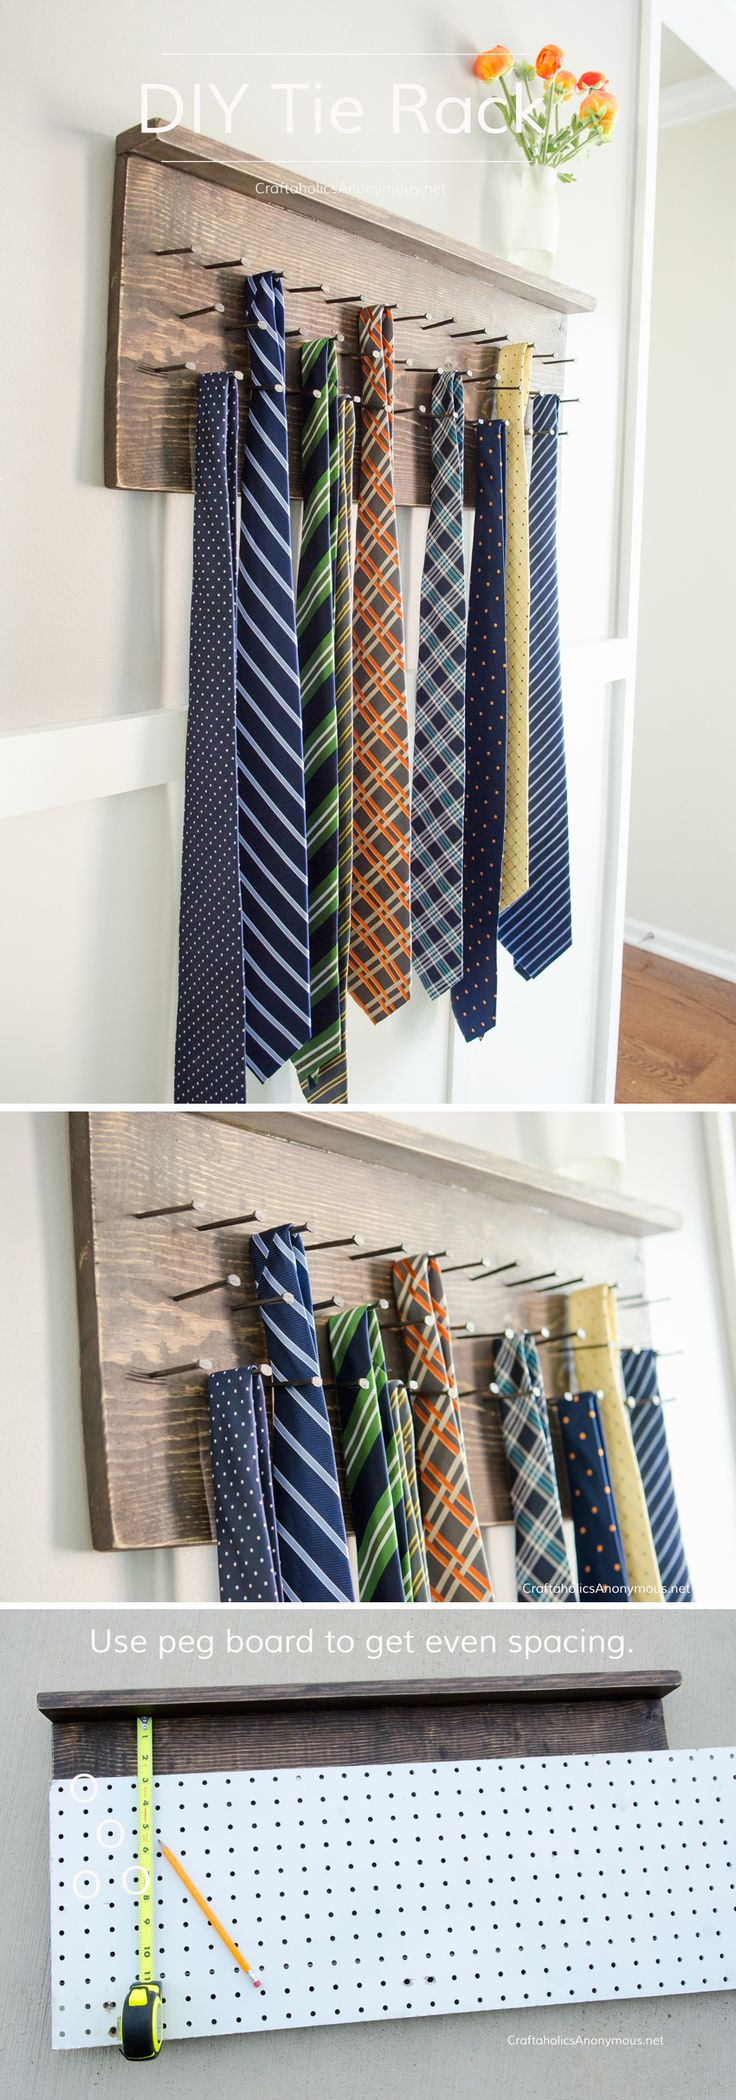 DIY Wood Tie Rack Tutorial || Wouldn't this make a great Father's Day gift? Love the peg board tip. More